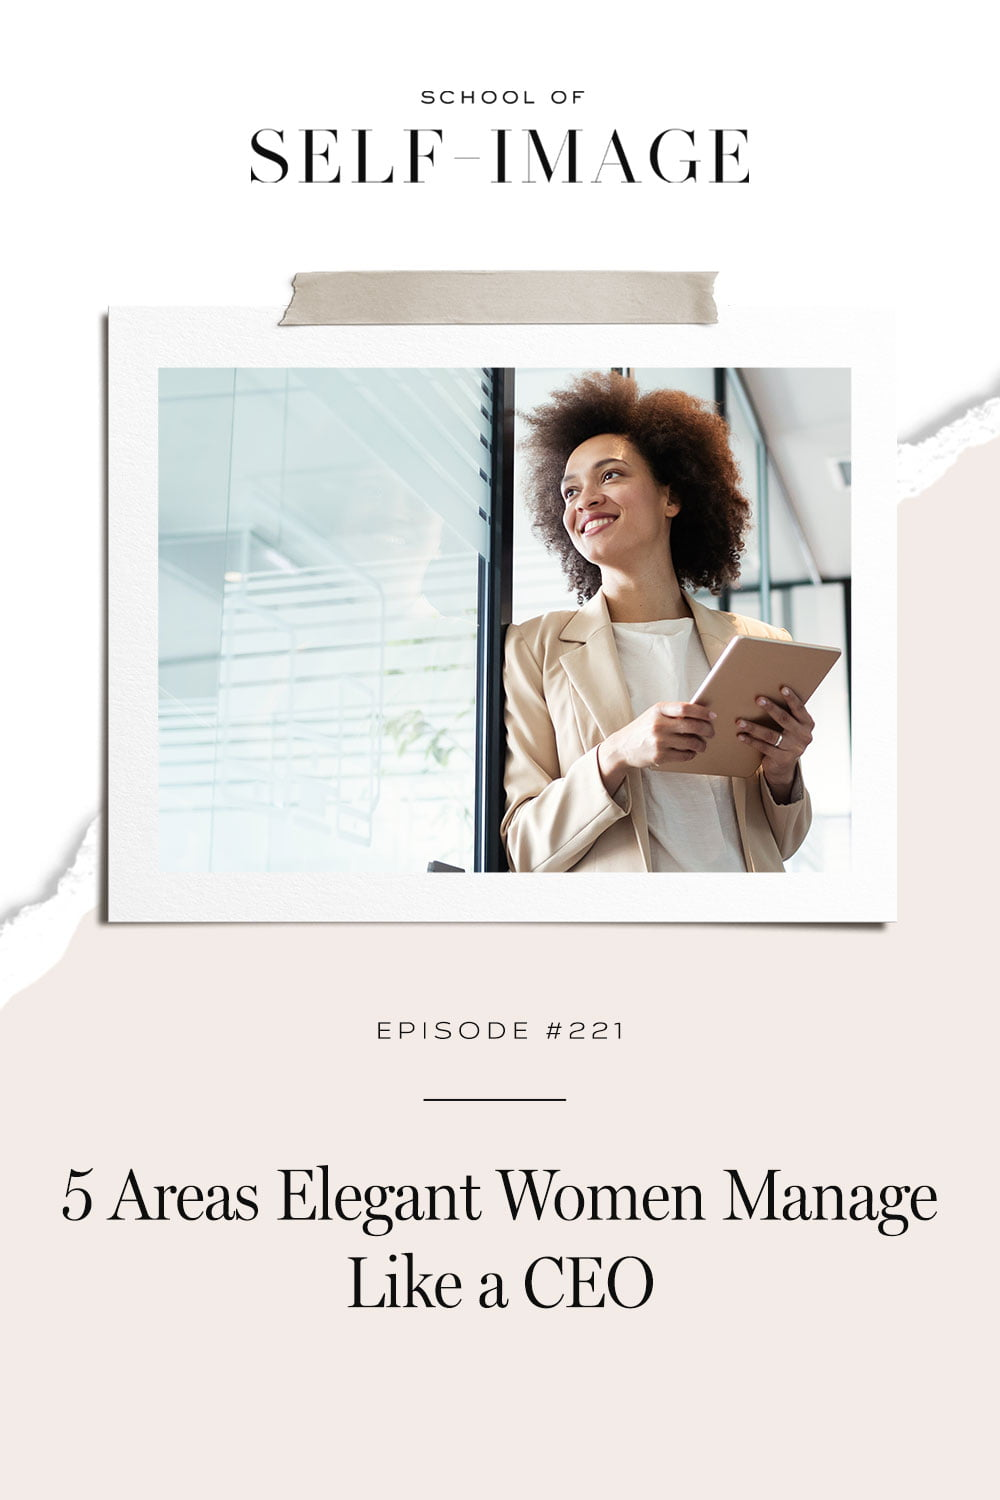 How I manage these areas in my own life and what has changed as a result.